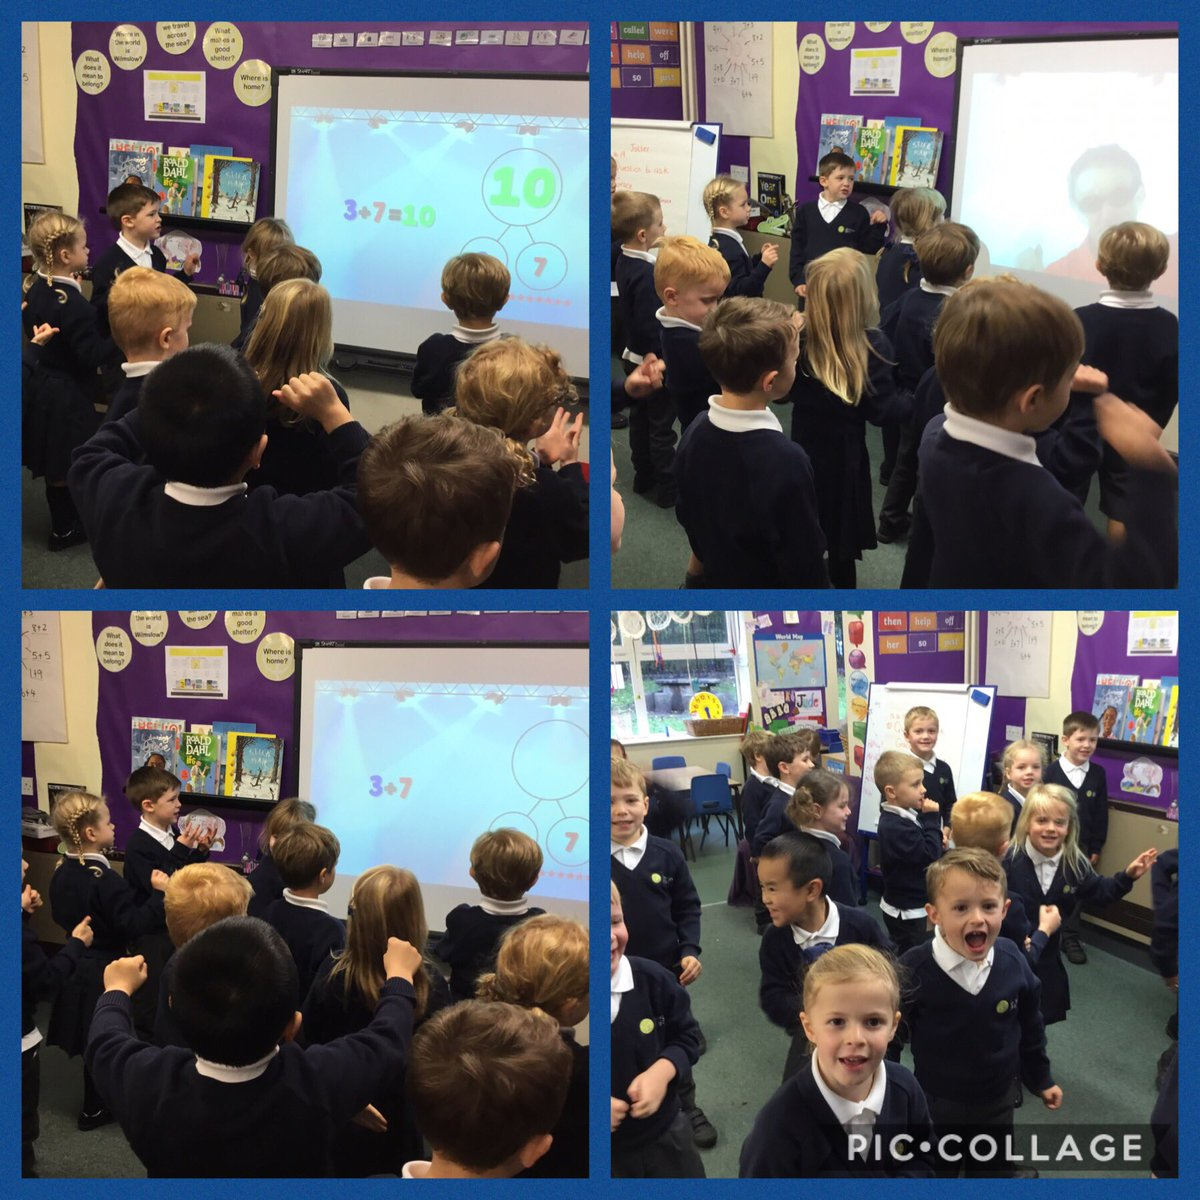 test Twitter Media - Sometimes getting up and dancing to learn, is the BEST way in @GorseyY1 #gorseymaths #gorseype https://t.co/y8SjlnH5Jb